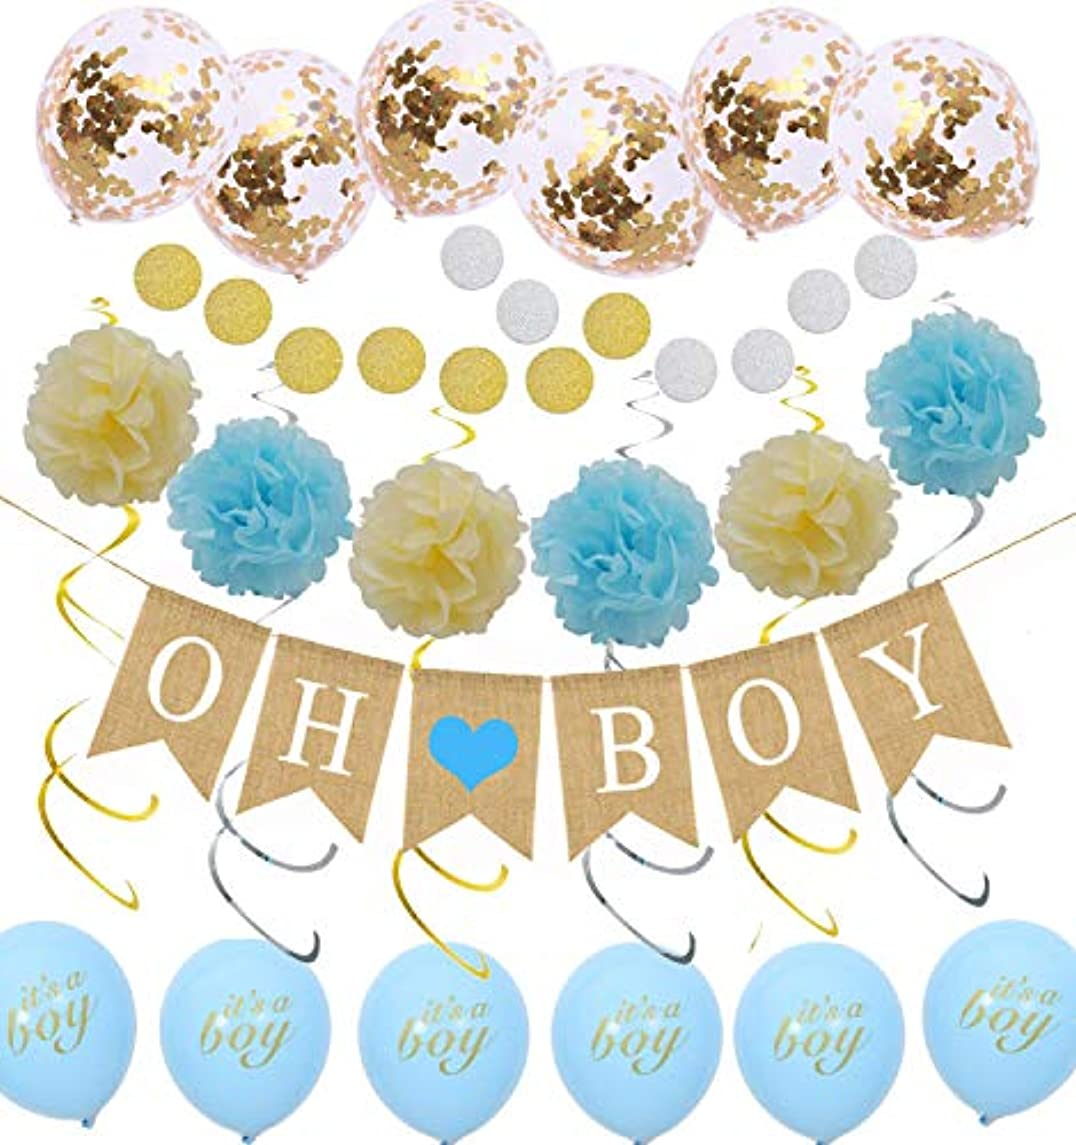 Ujqoah OH BOY Burlap Banner for Baby Shower Decoration with Tissue Paper Pom Poms Latex Balloons Circle Paper Garland and Party Hanging Swrils for Gender Reveal Party Boys Birthday Party Decoration